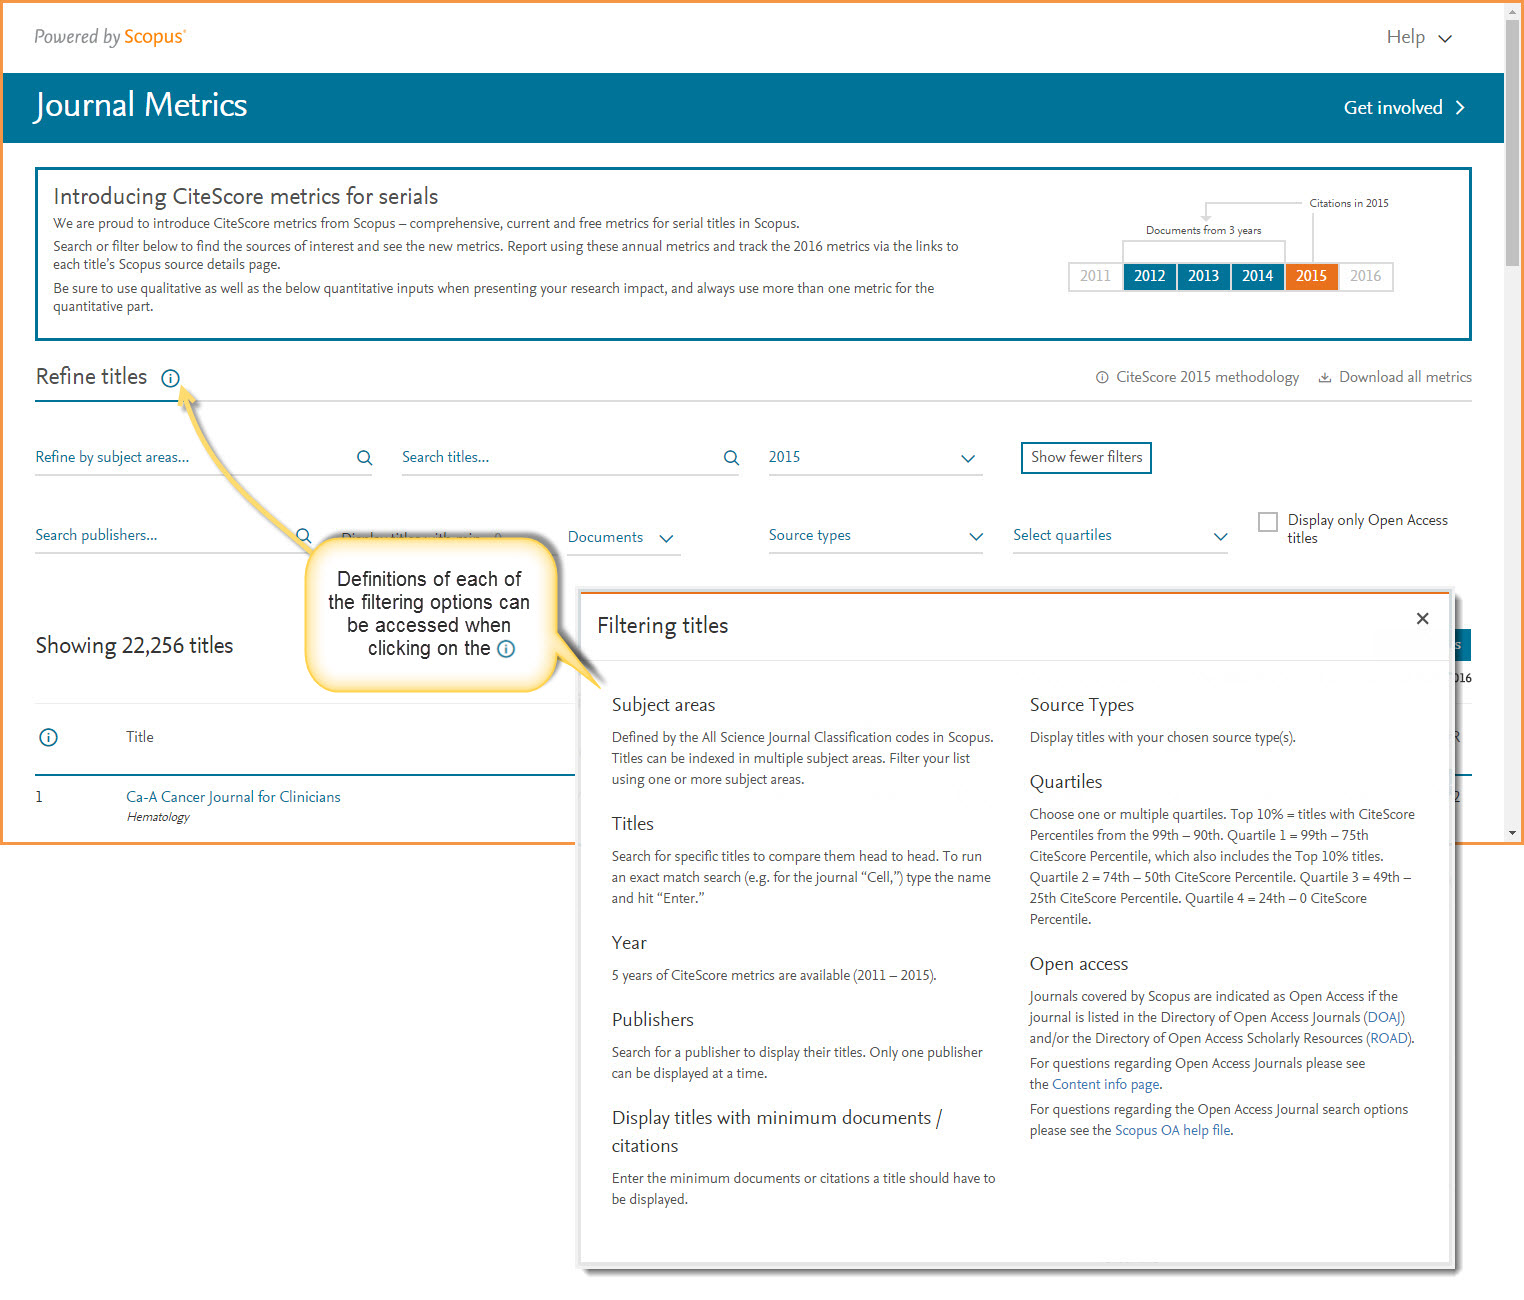 How to explore, compare and track journal citation impact with